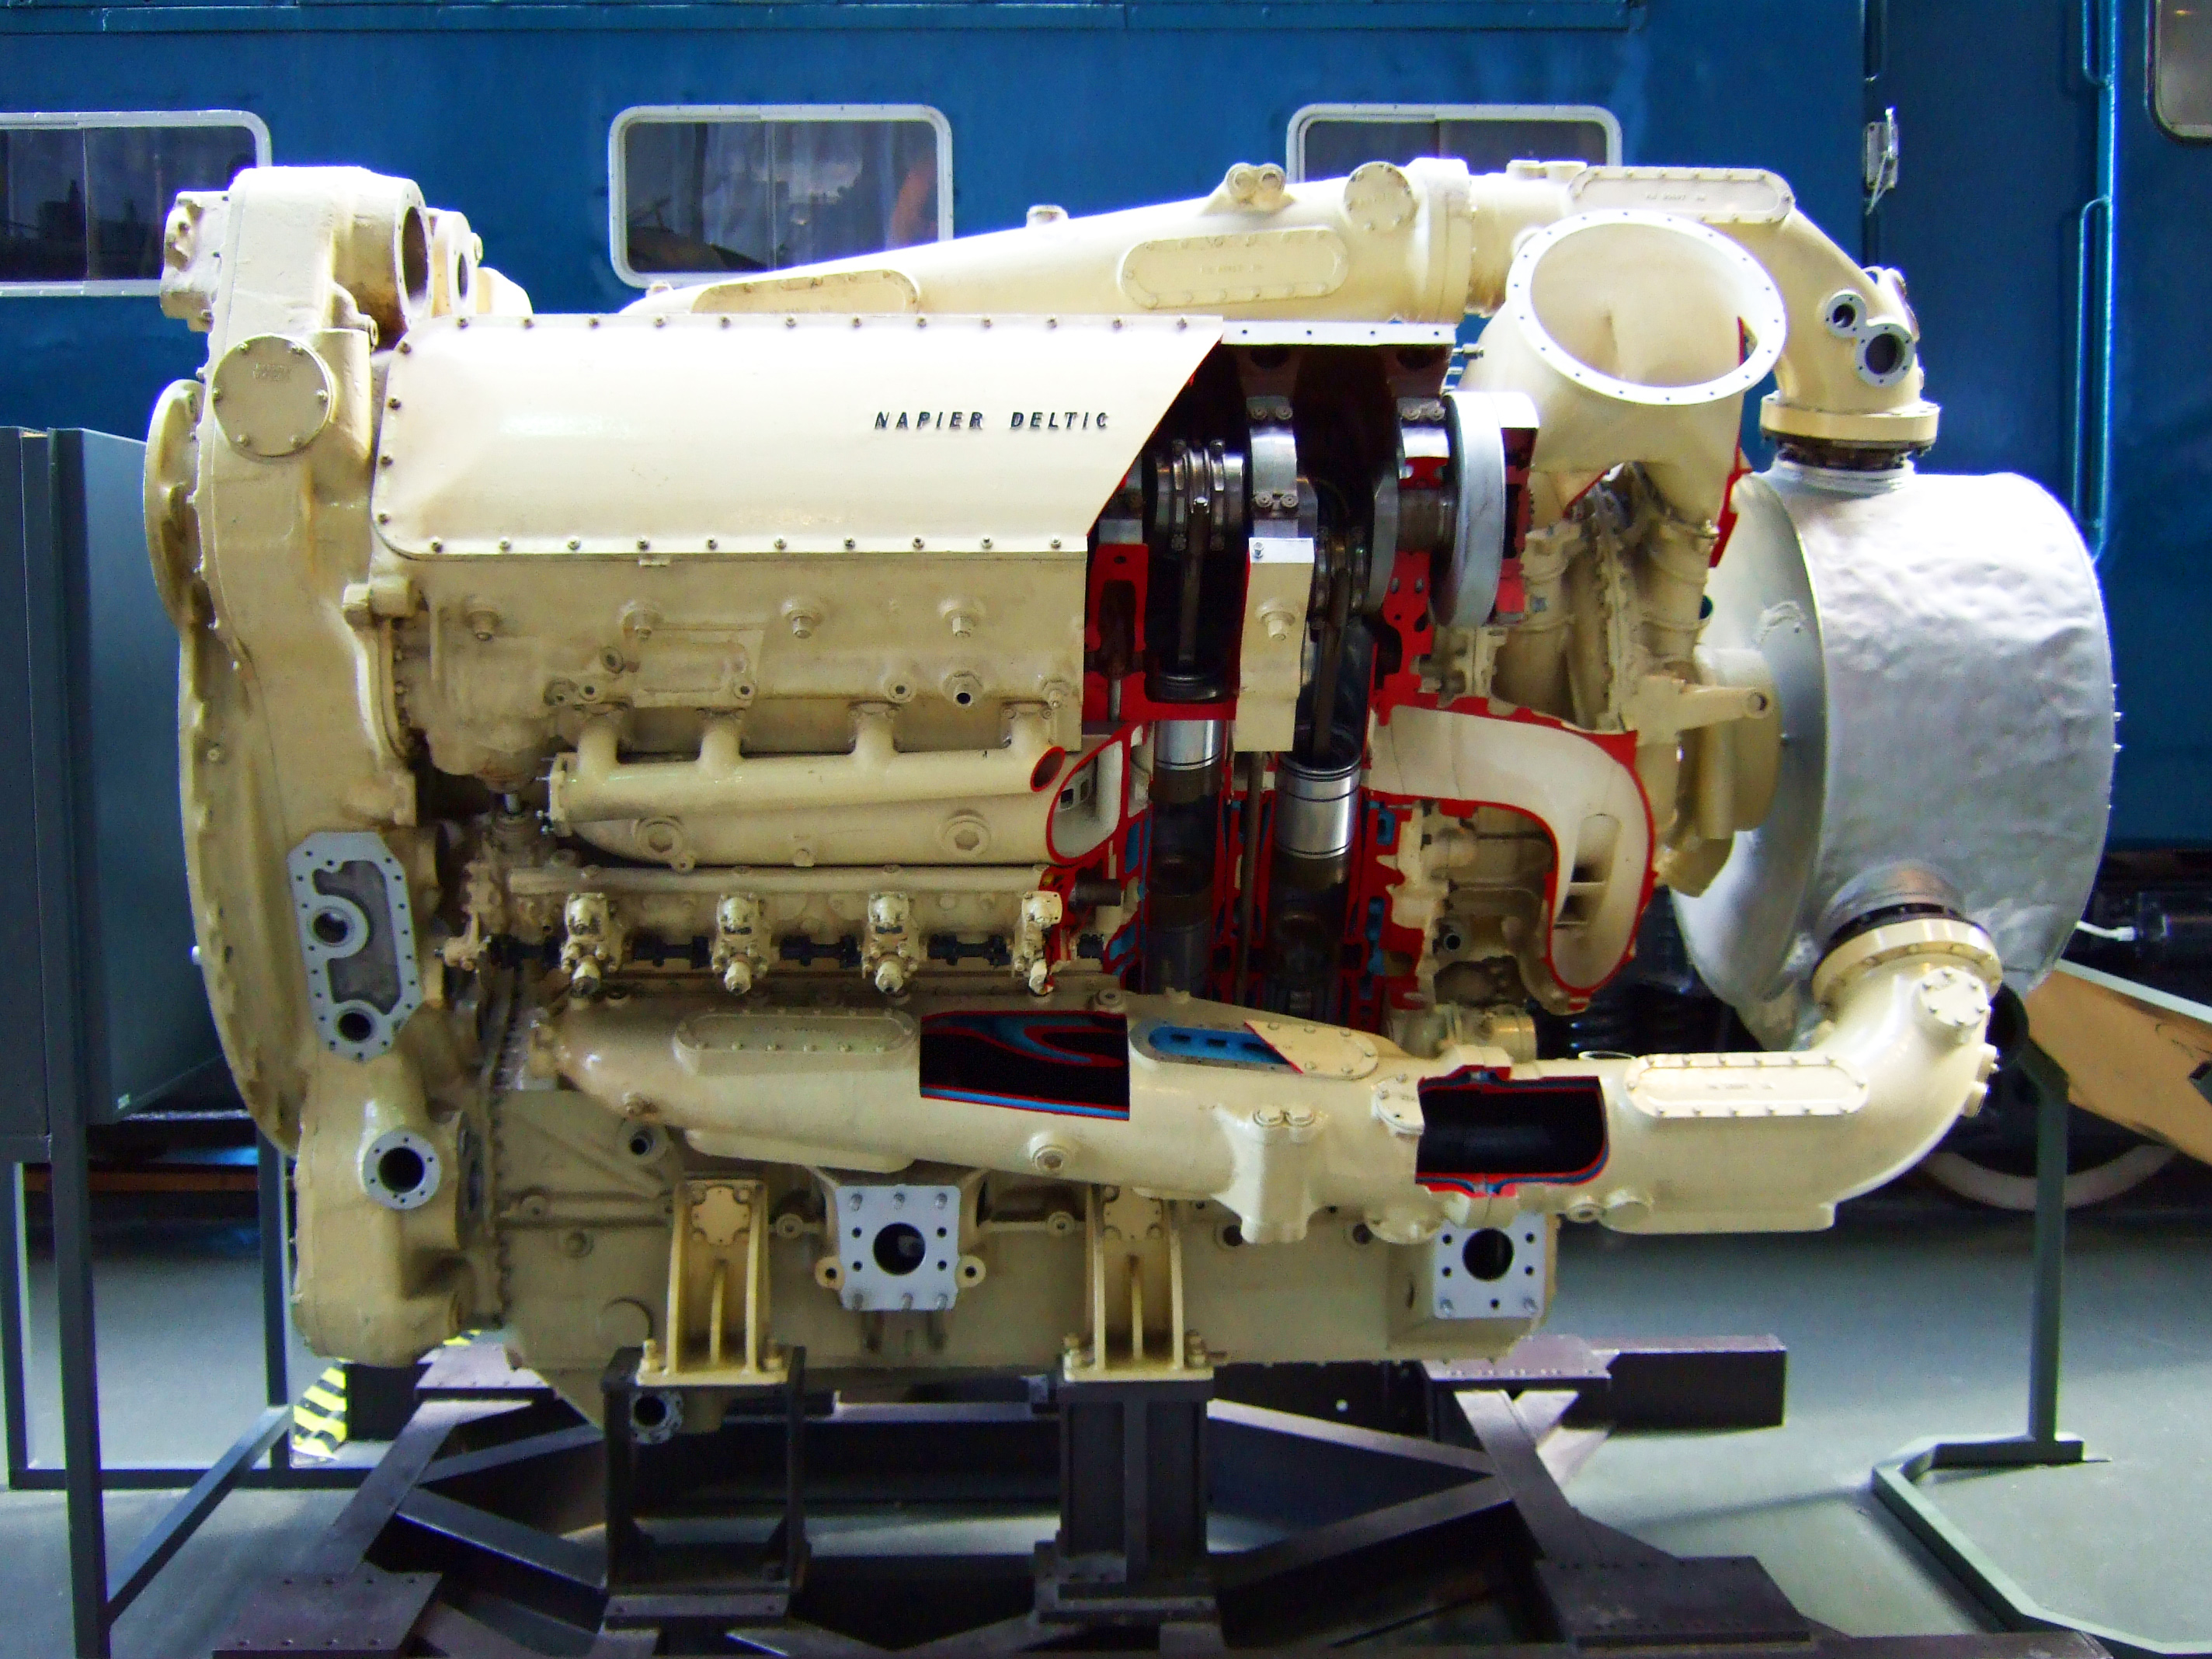 Napier_Deltic_Diesel_Engine_National_Railway_Museum.jpg